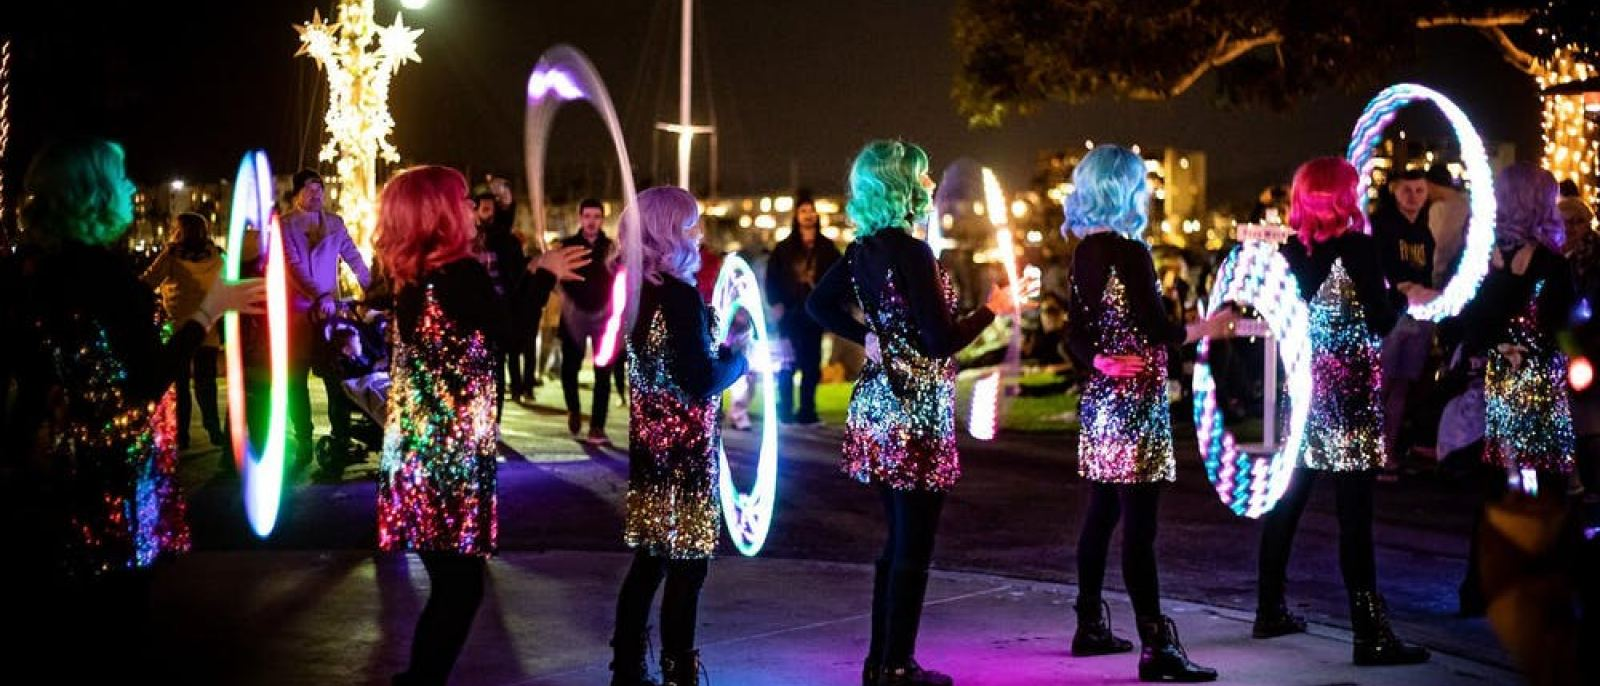 New Year's Eve Fireworks & Glow Party at Burton Chace Park in Marina del Rey